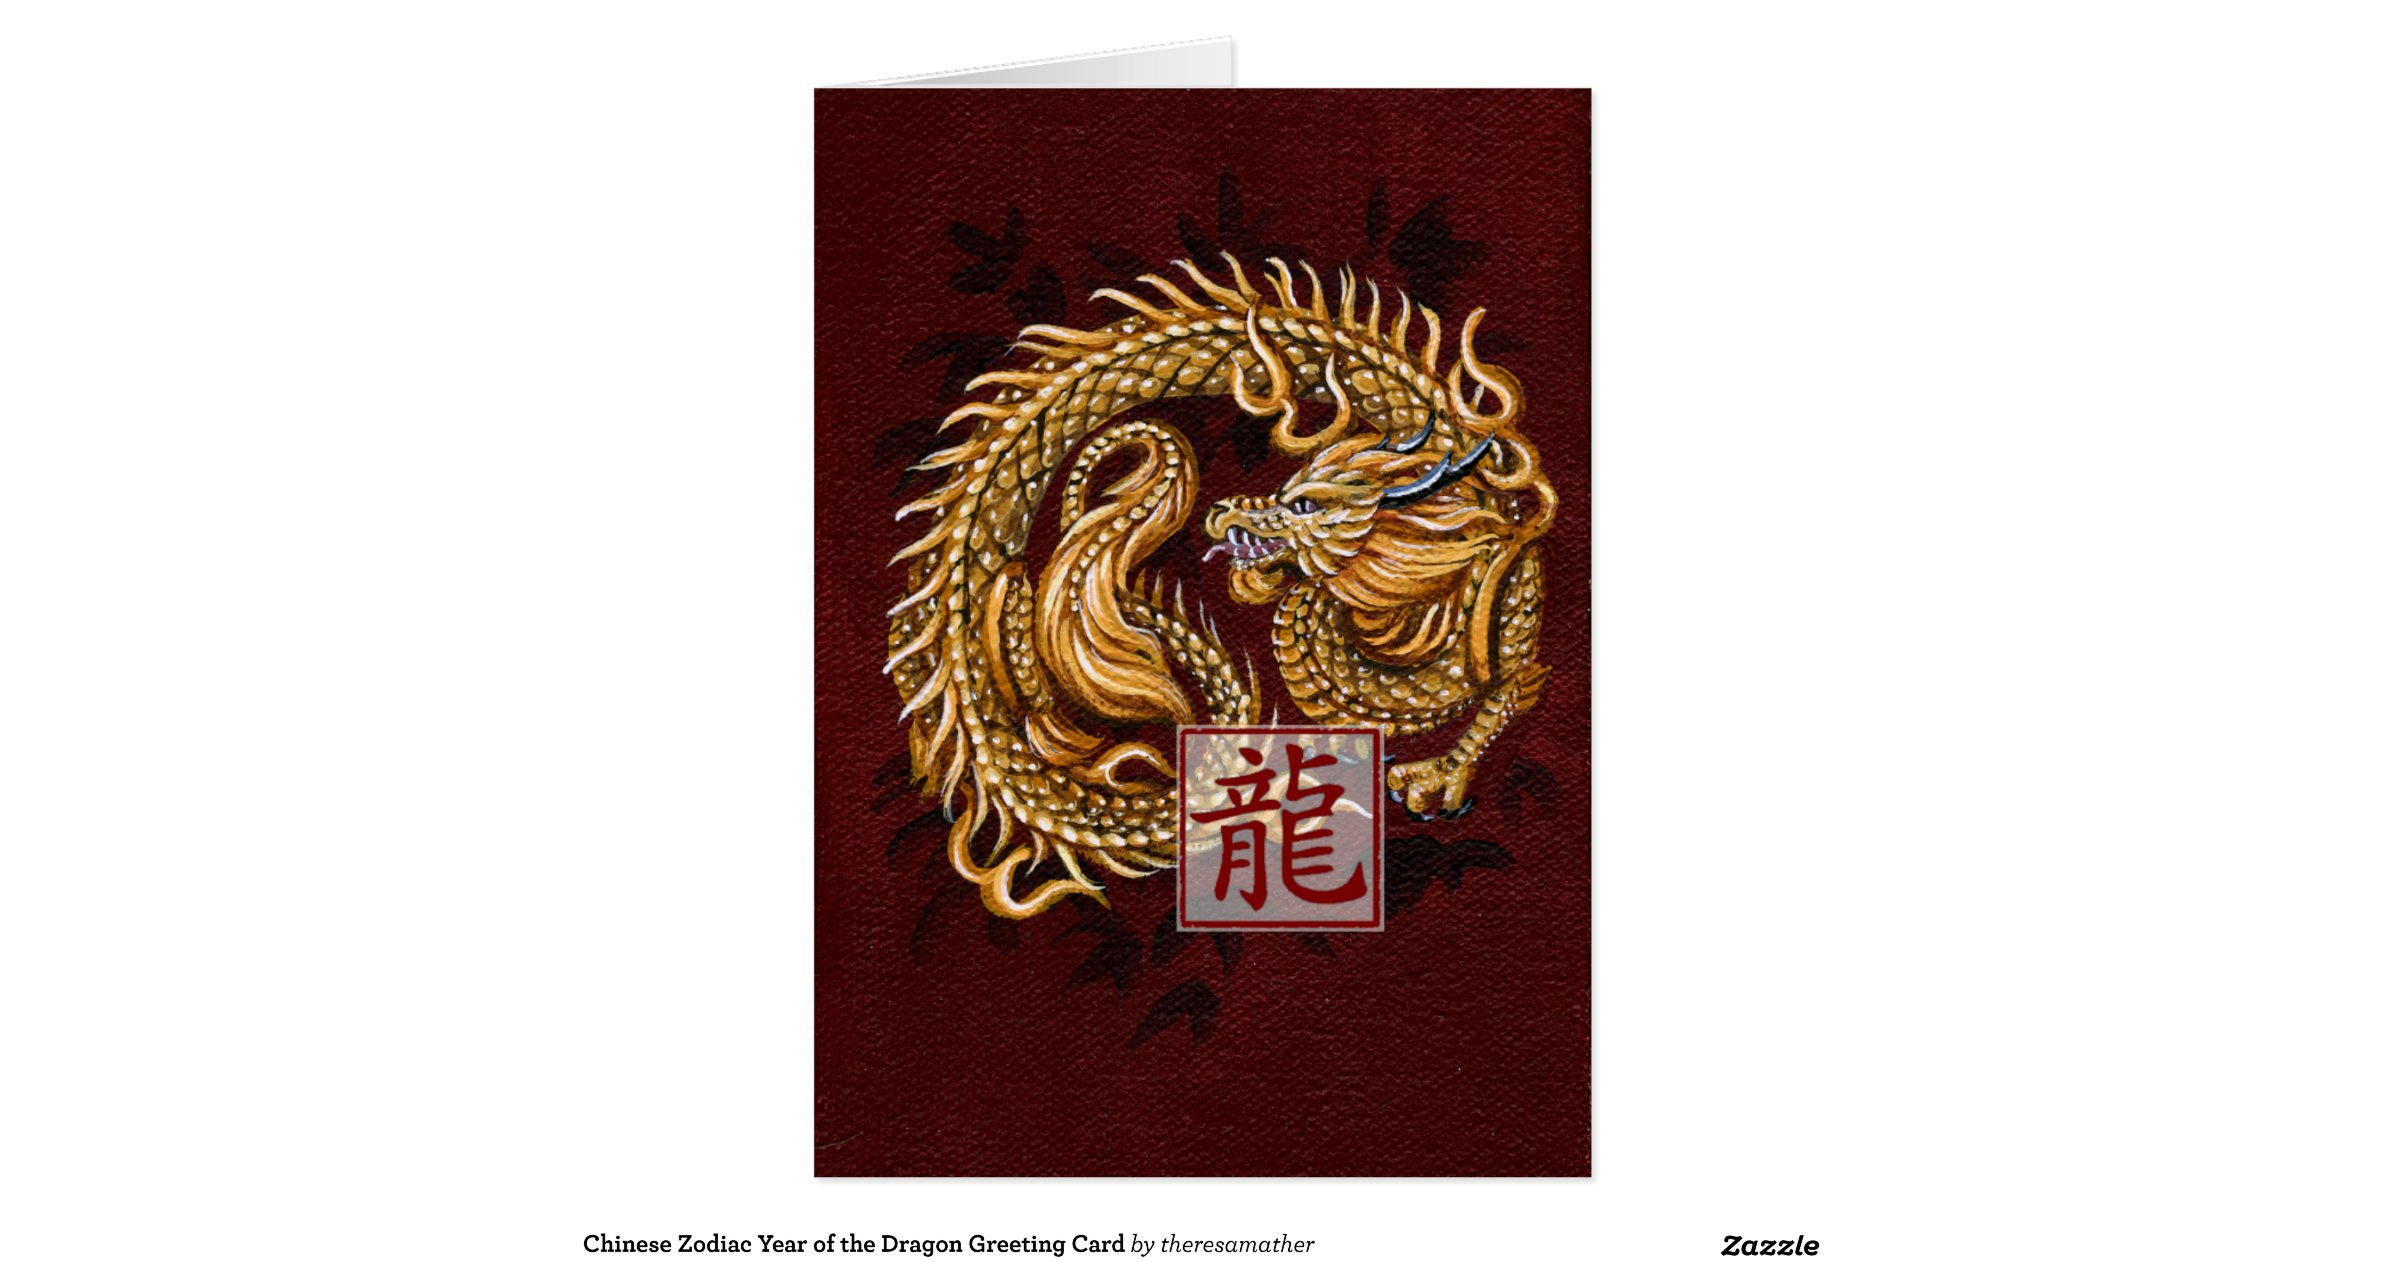 chinese zodiac year of the dragon greeting card r55fce7b0a1974a3ea80cc9bfd0dfed87 xvuat 8byvr. Black Bedroom Furniture Sets. Home Design Ideas